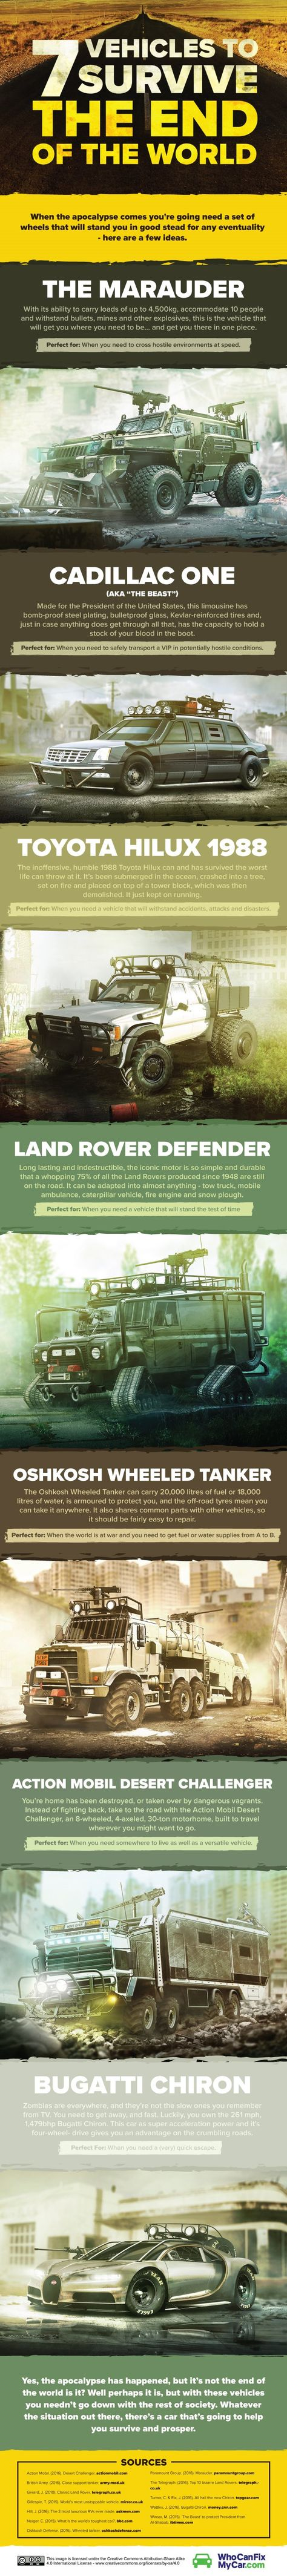 Have you thought about the kind of vehicle you might need in a survivalist…